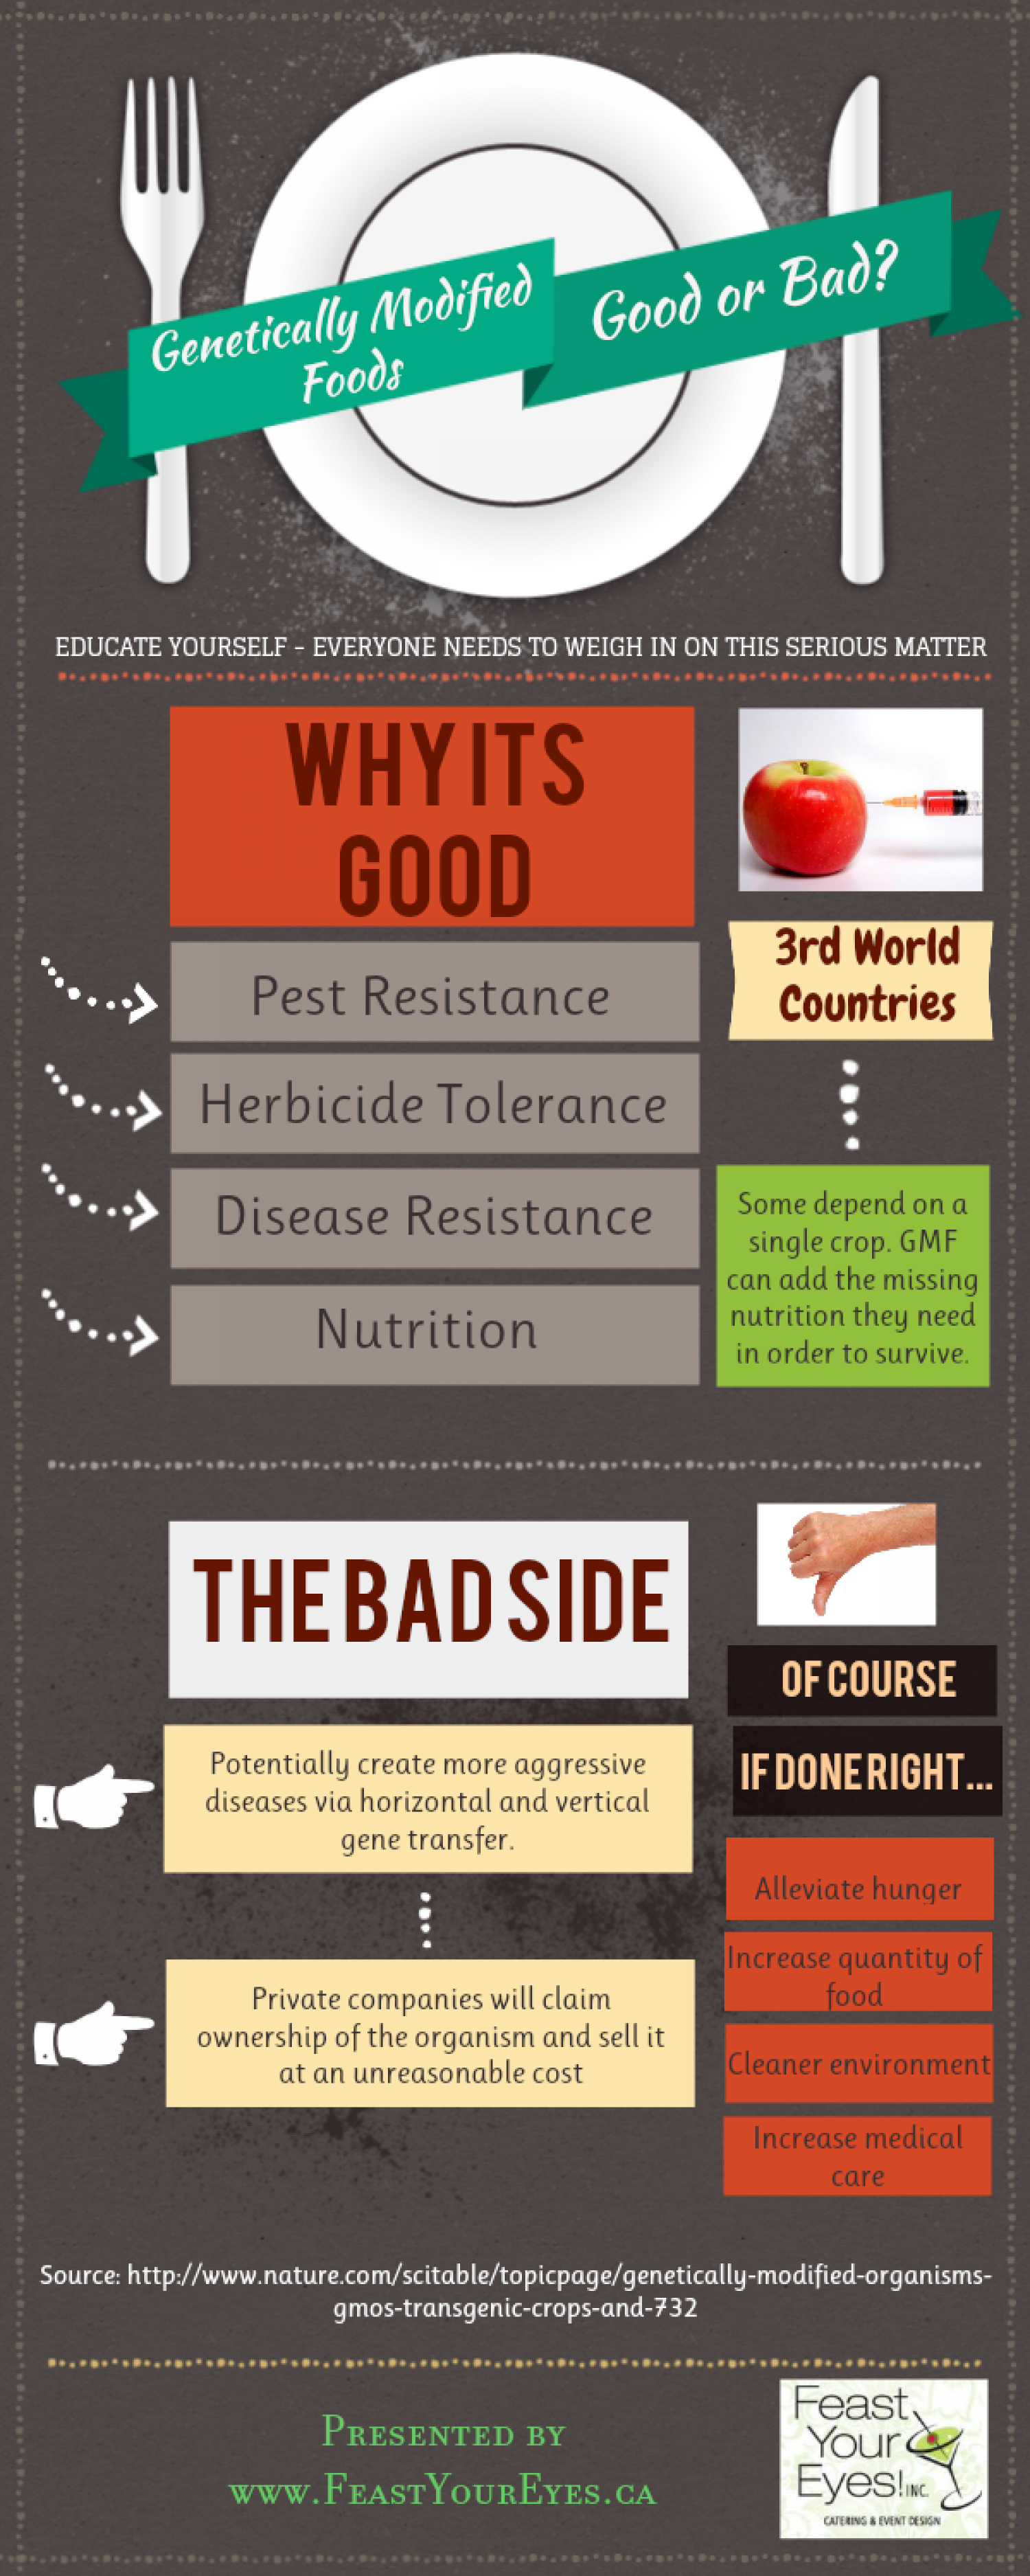 Genetically Modified Foods: Good or Bad?  Infographic